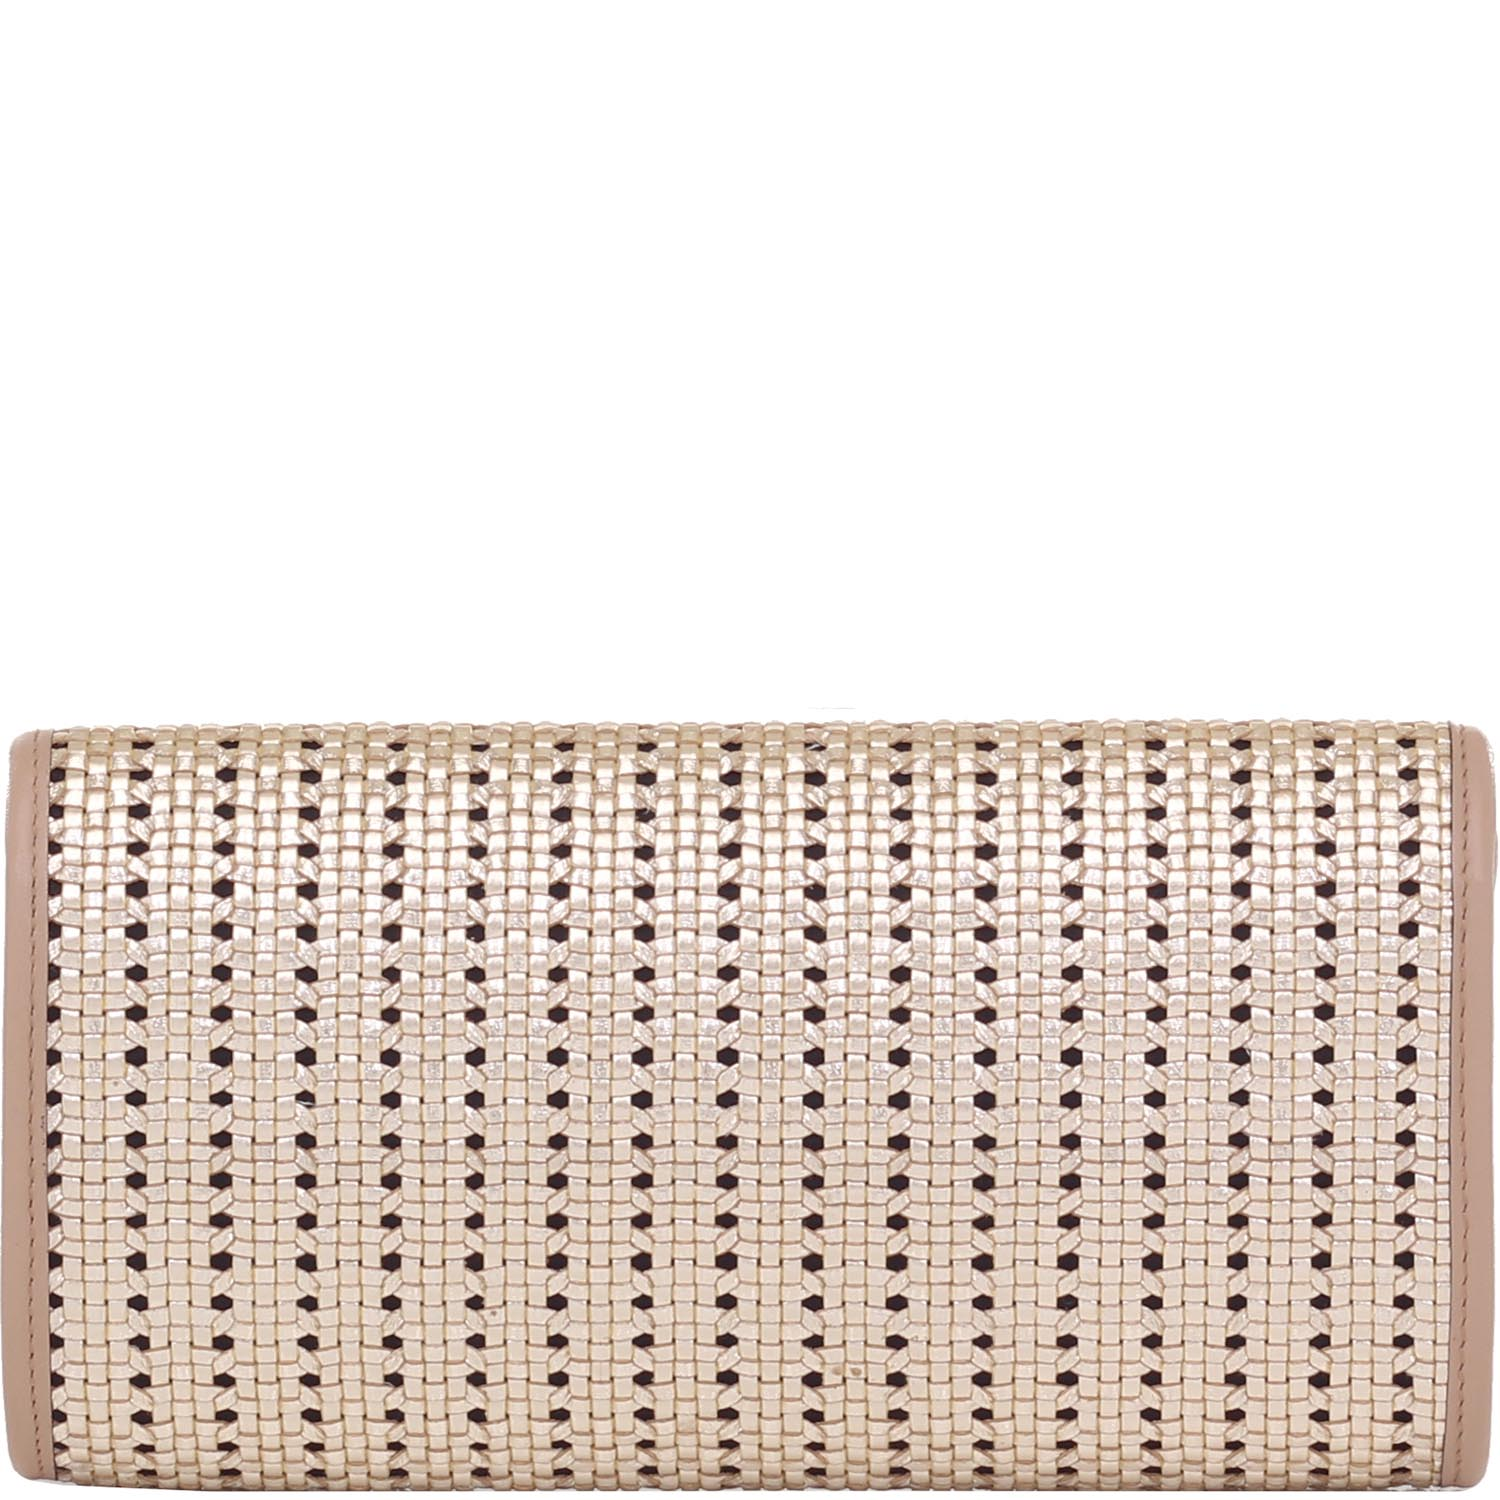 a5d6e15ba92 Clutch Smartbag Tressê Metalizado Prata Velha Taupe - 78015.15. Previous.  Loading zoom